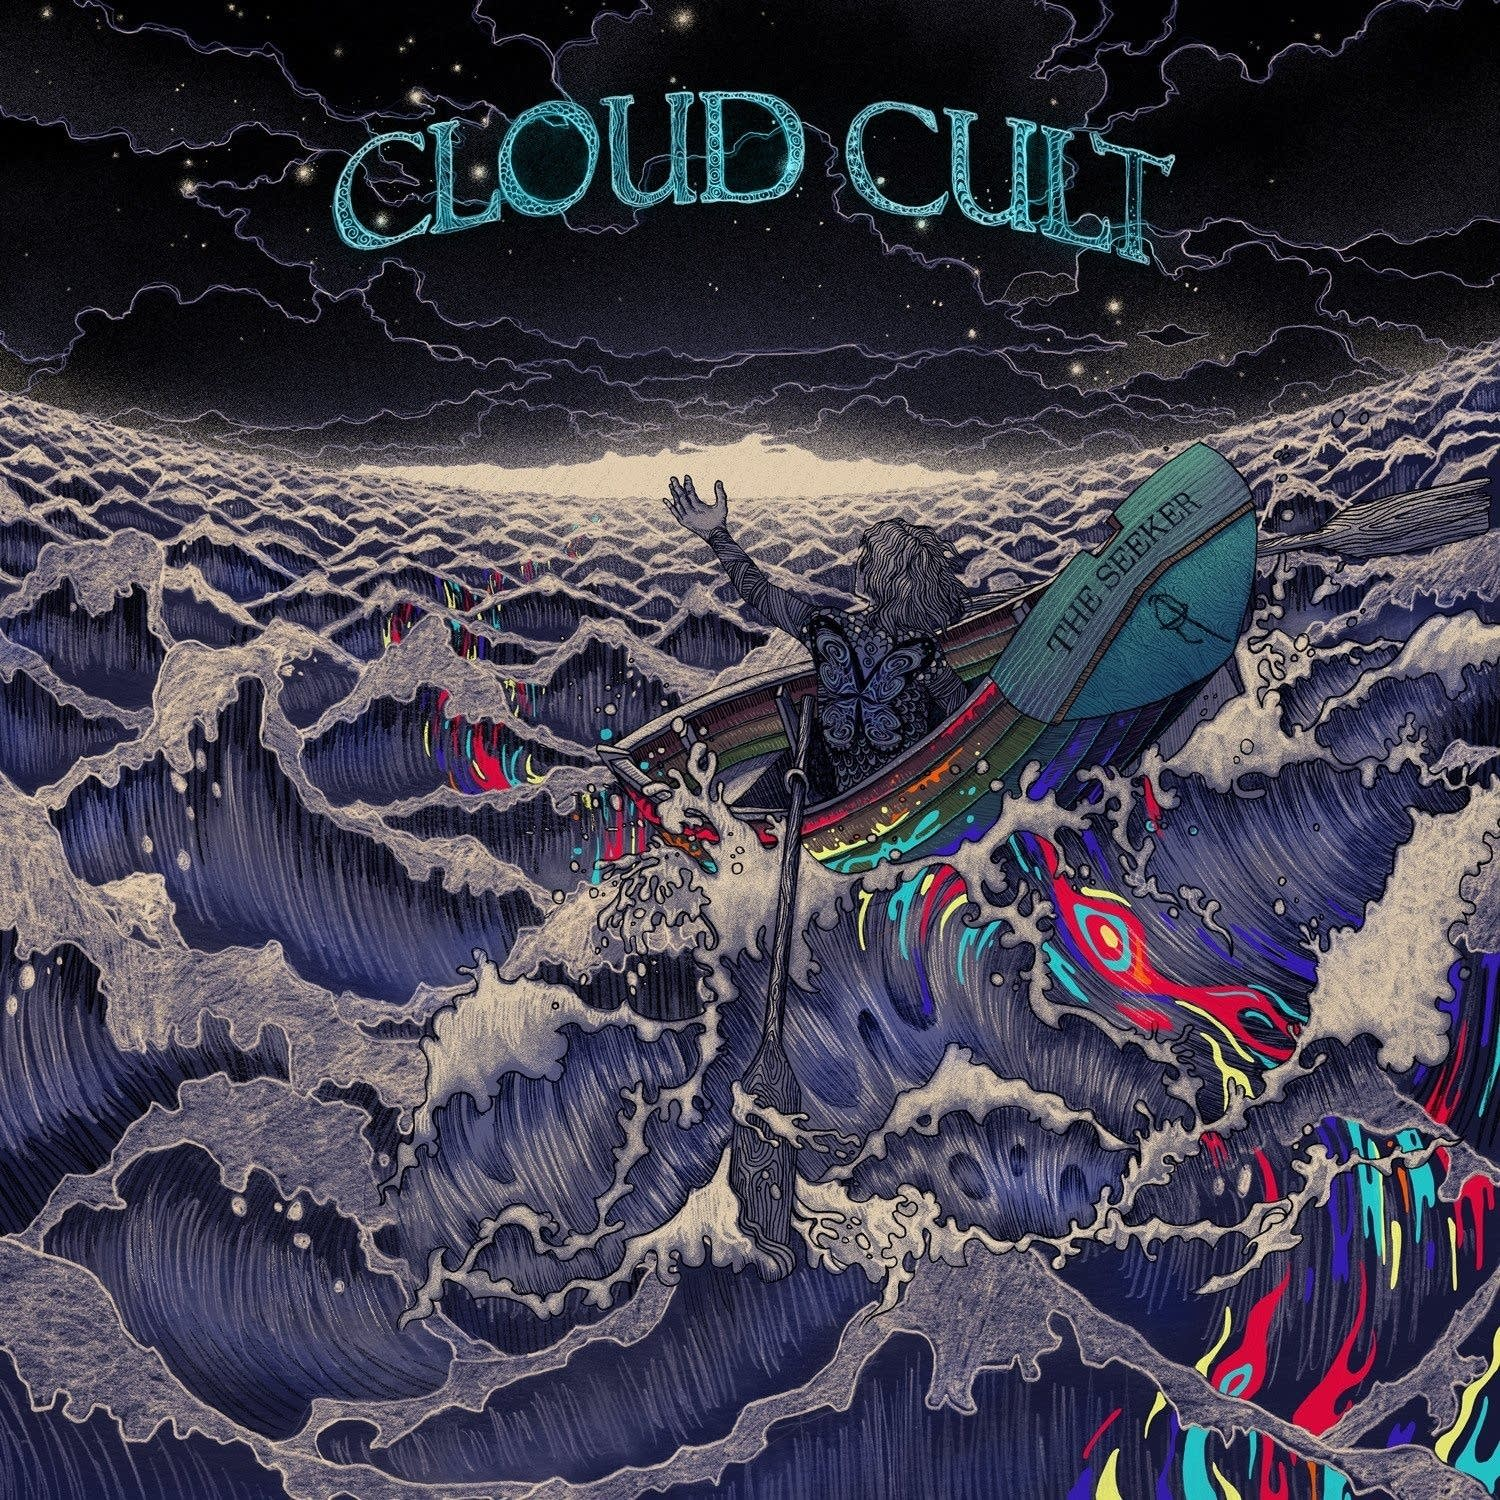 Cloud Cult, 'The Seeker'